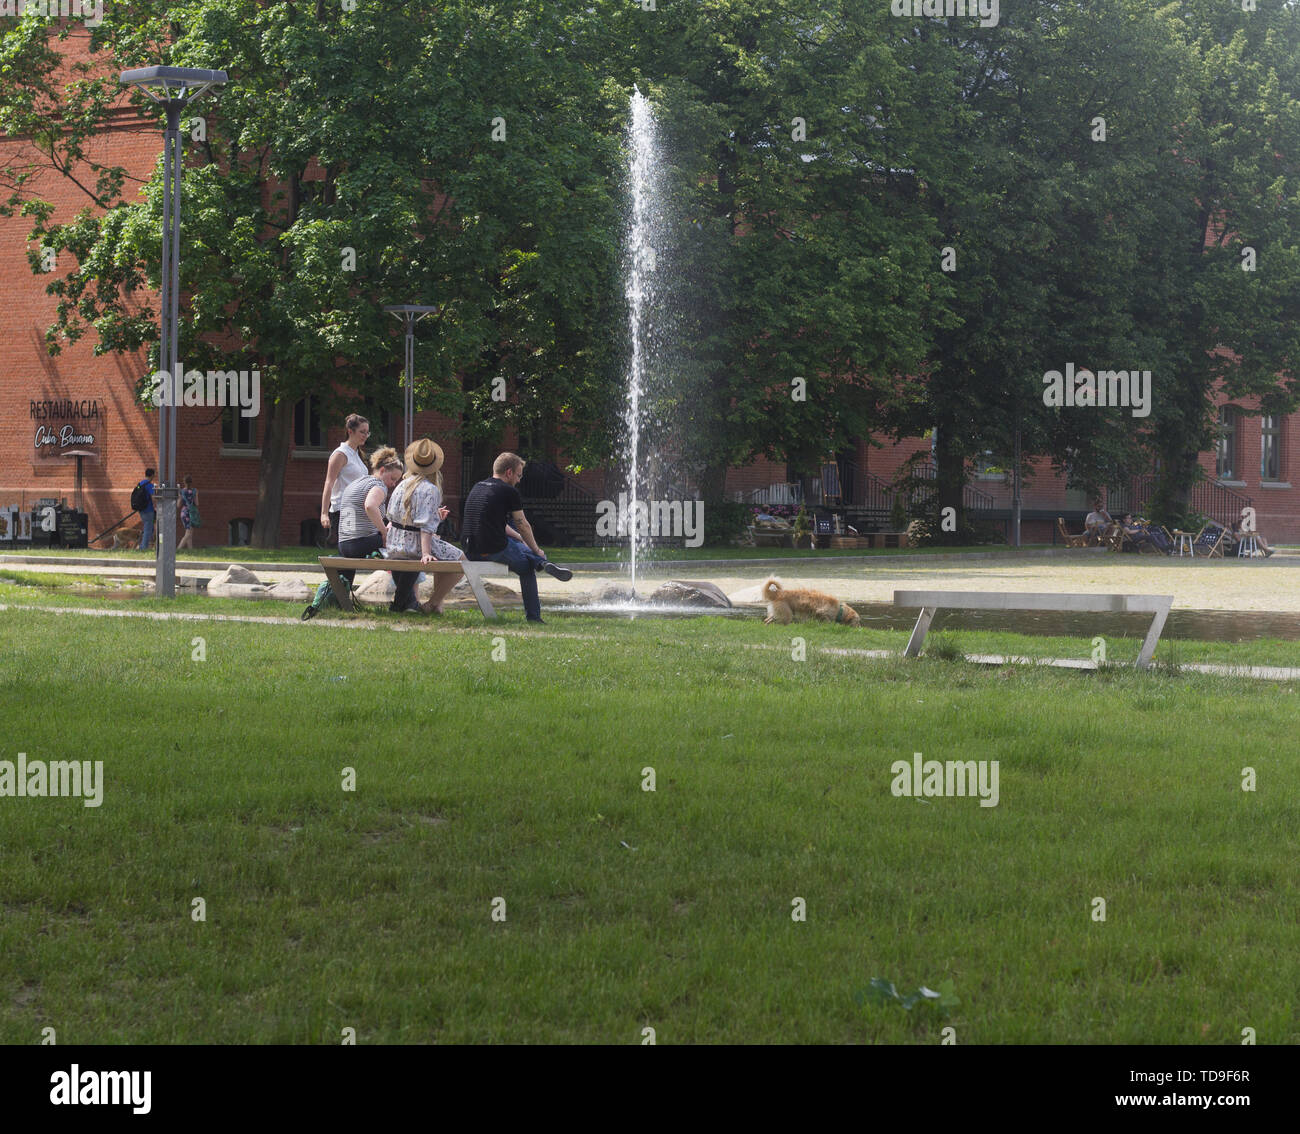 Gdansk Wrzeszcz, Poland - June 8, 2019: Family spends time together near the fountain in a recently gentrified district Garnizon. - Stock Image